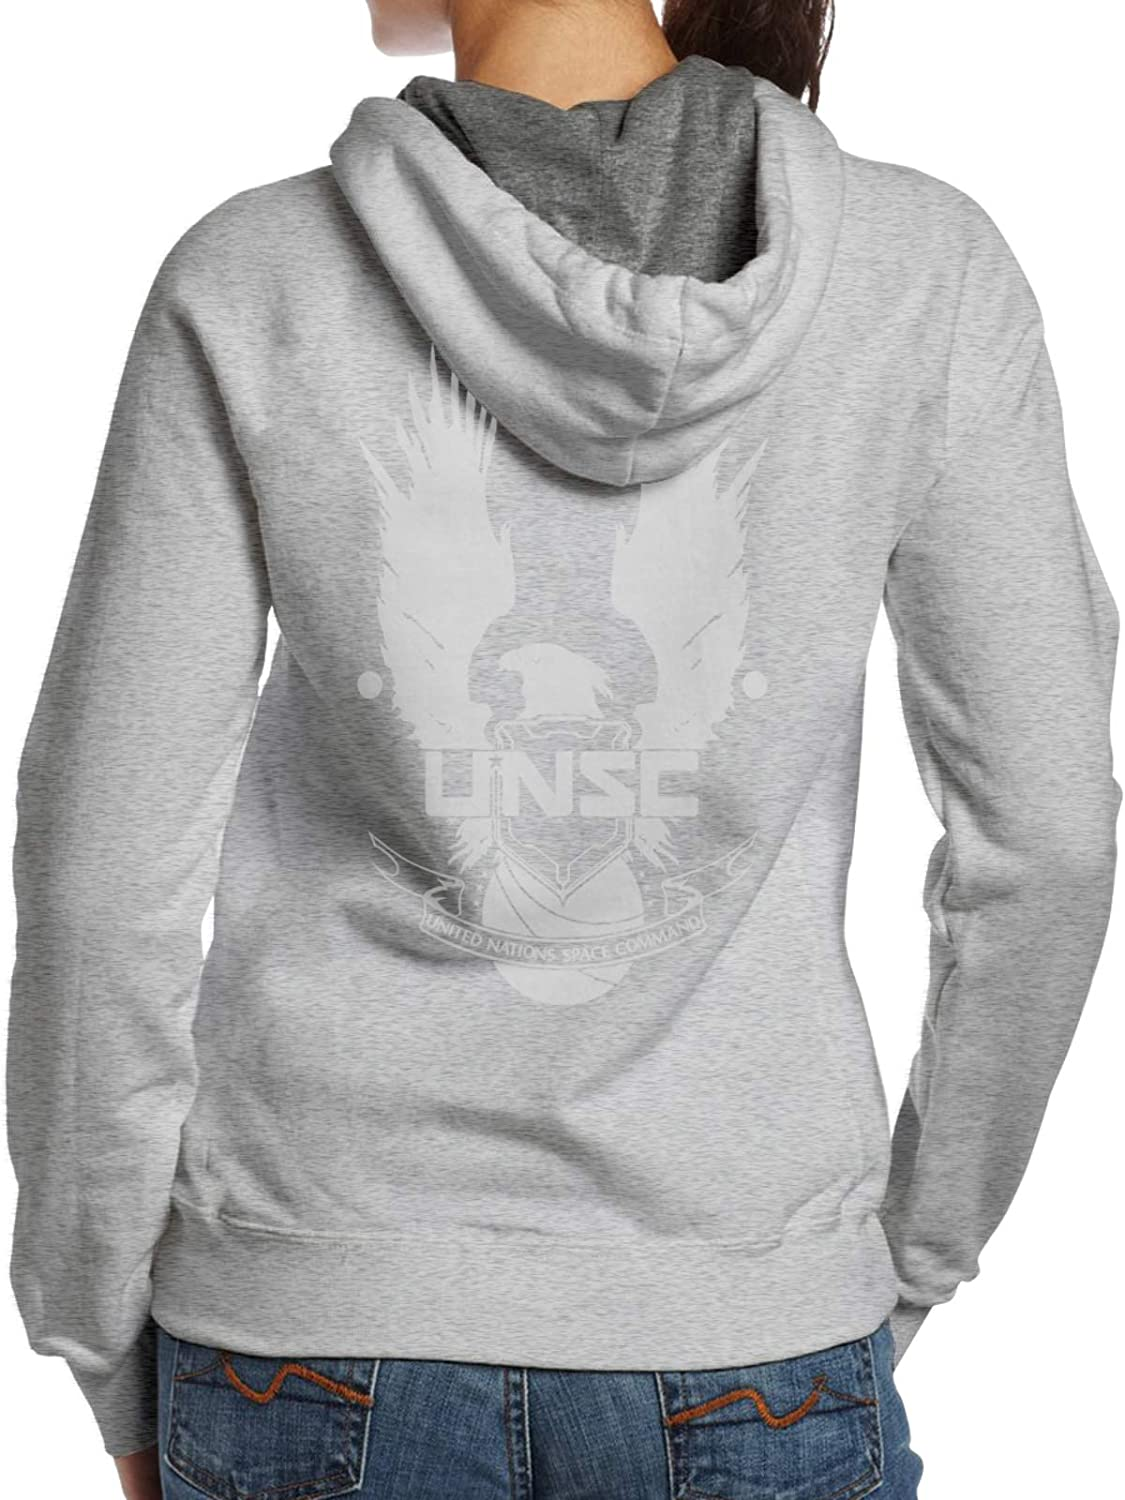 Unsc Logo Womans Hoodie Fashion Casual Special price for a limited Same day shipping time Long Sweater Sleeve